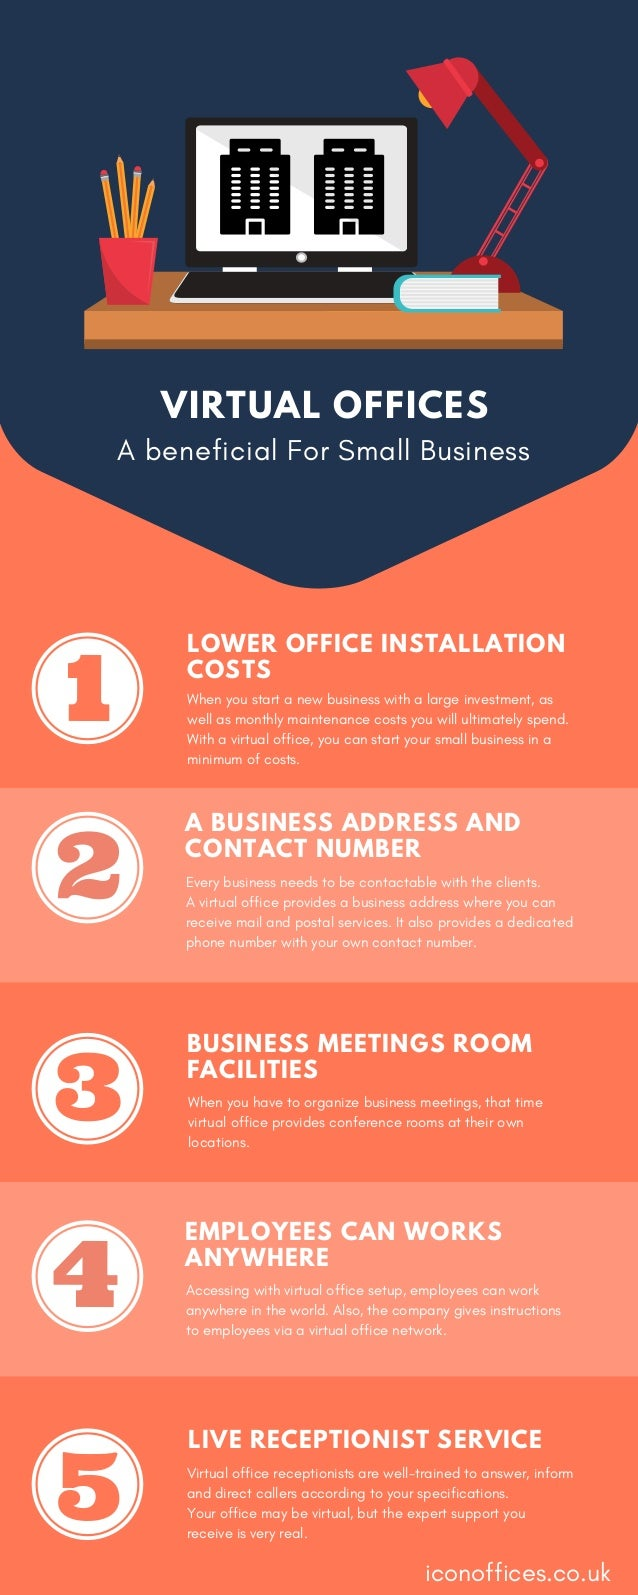 5 Key Benefits Of Virtual Offices For Small Business Infographic